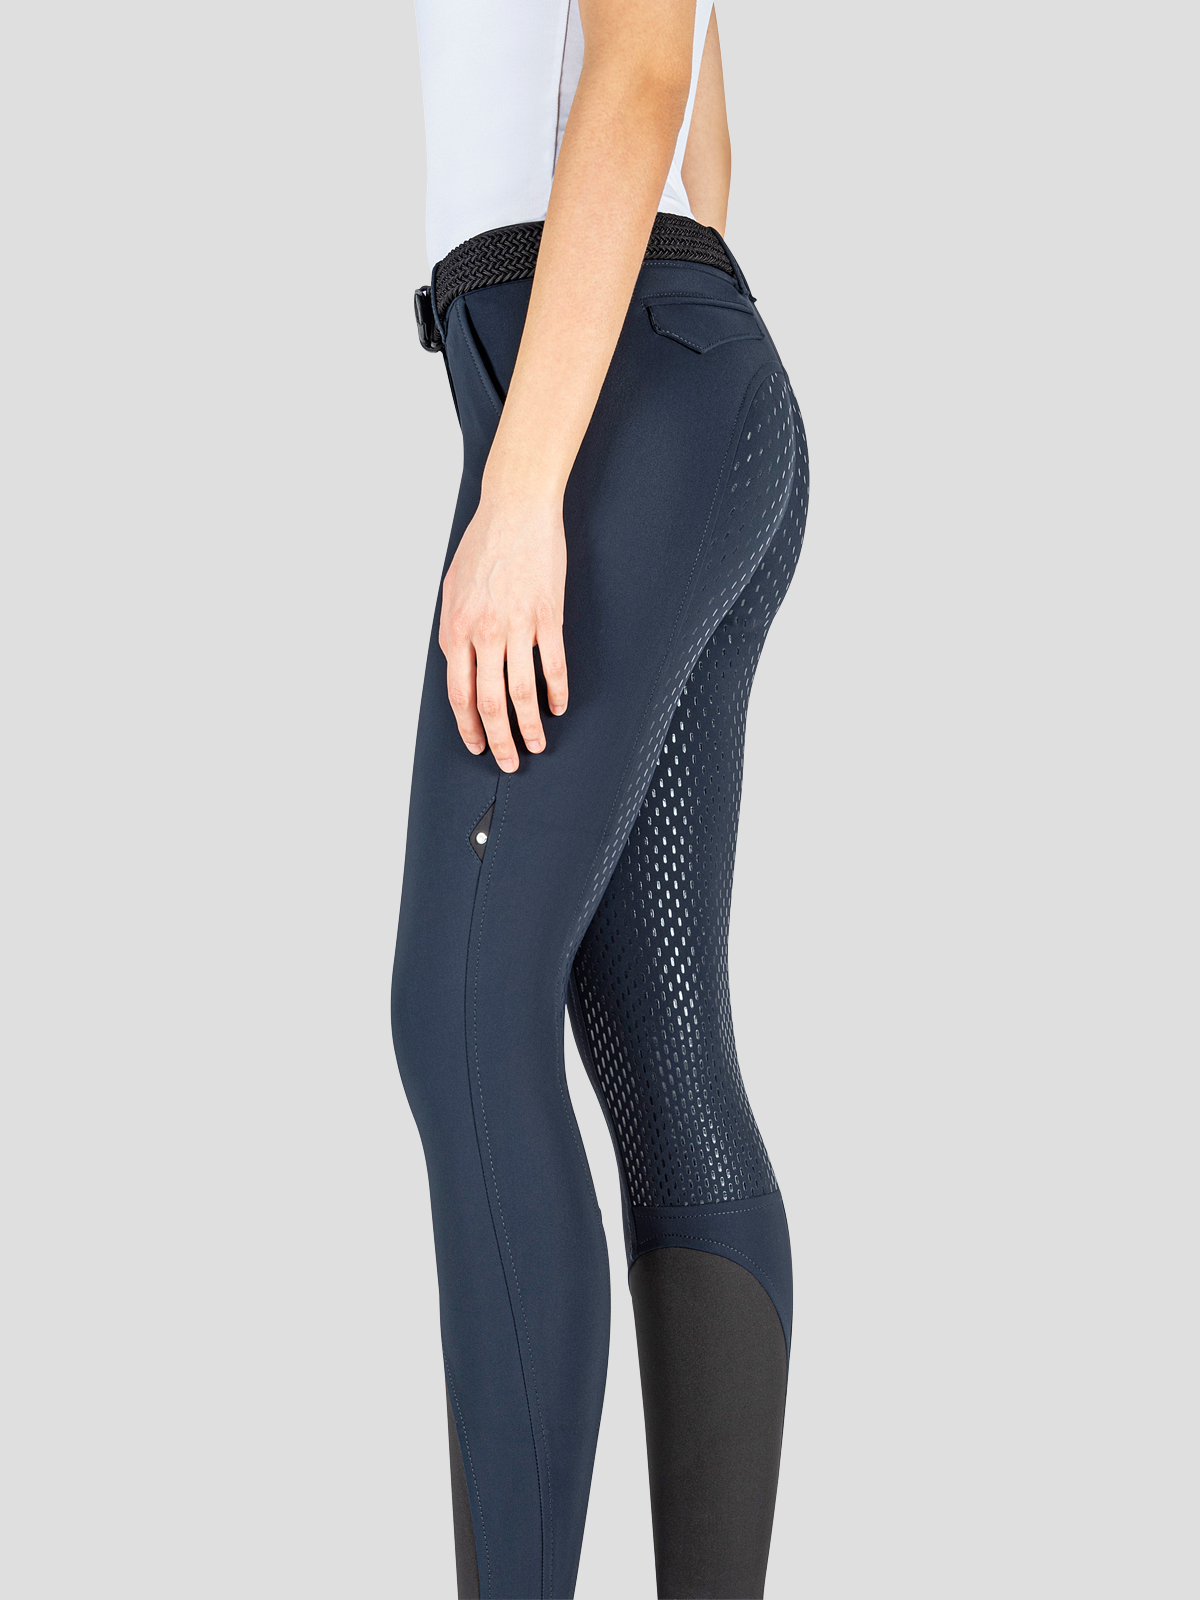 JULIK WOMEN'S FULL GRIP RIDING BREECHES IN B-MOVE FABRIC 11